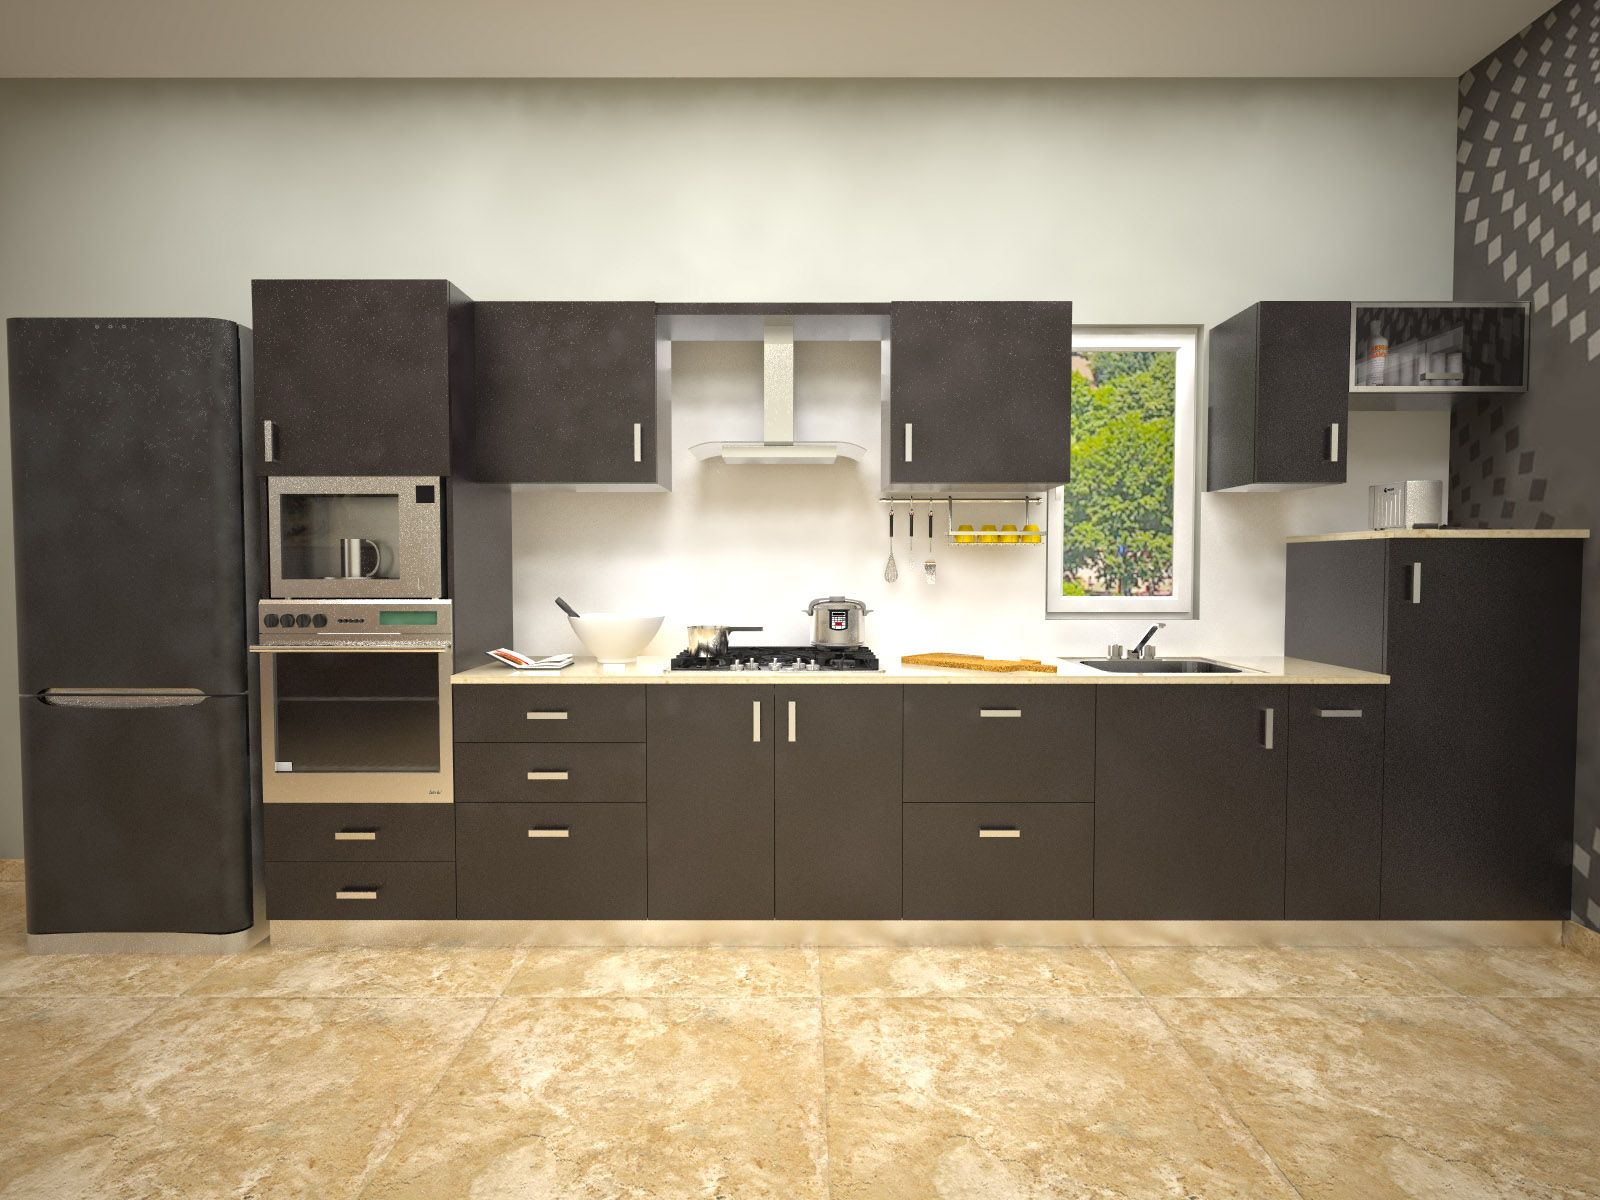 Aamoda kitchen gorgeously minimal modular kitchen system price aamodakitchenideas Modular kitchen design and cost